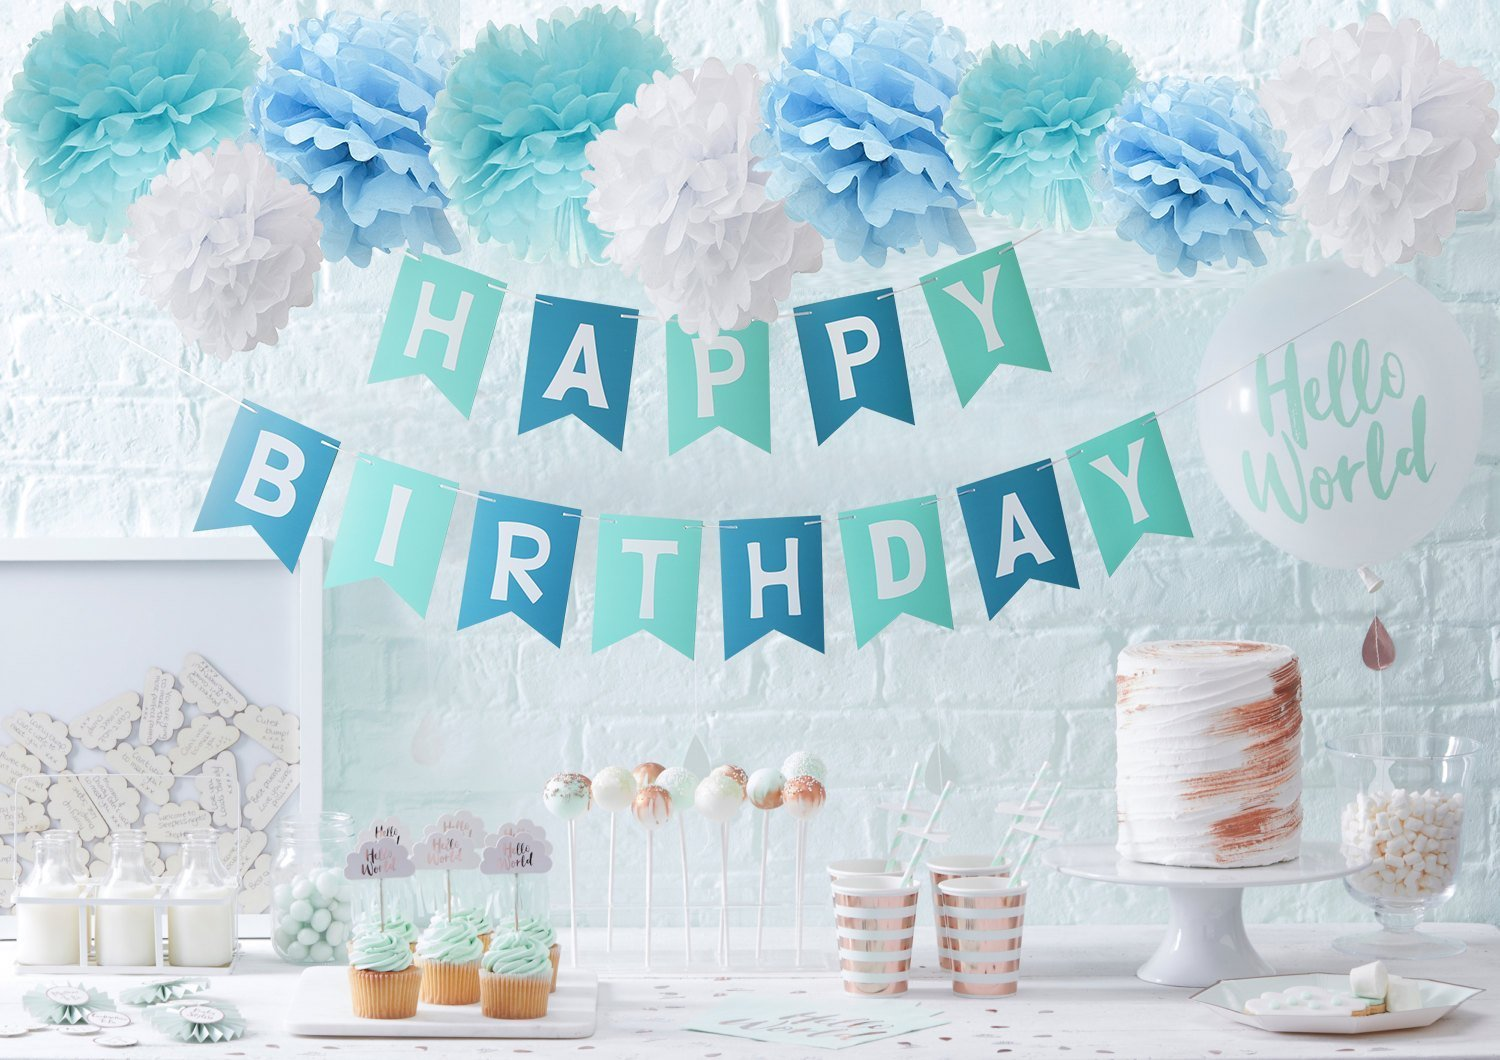 Cheap Baby Boy Birthday Decorations Find Baby Boy Birthday Decorations Deals On Line At Alibaba Com